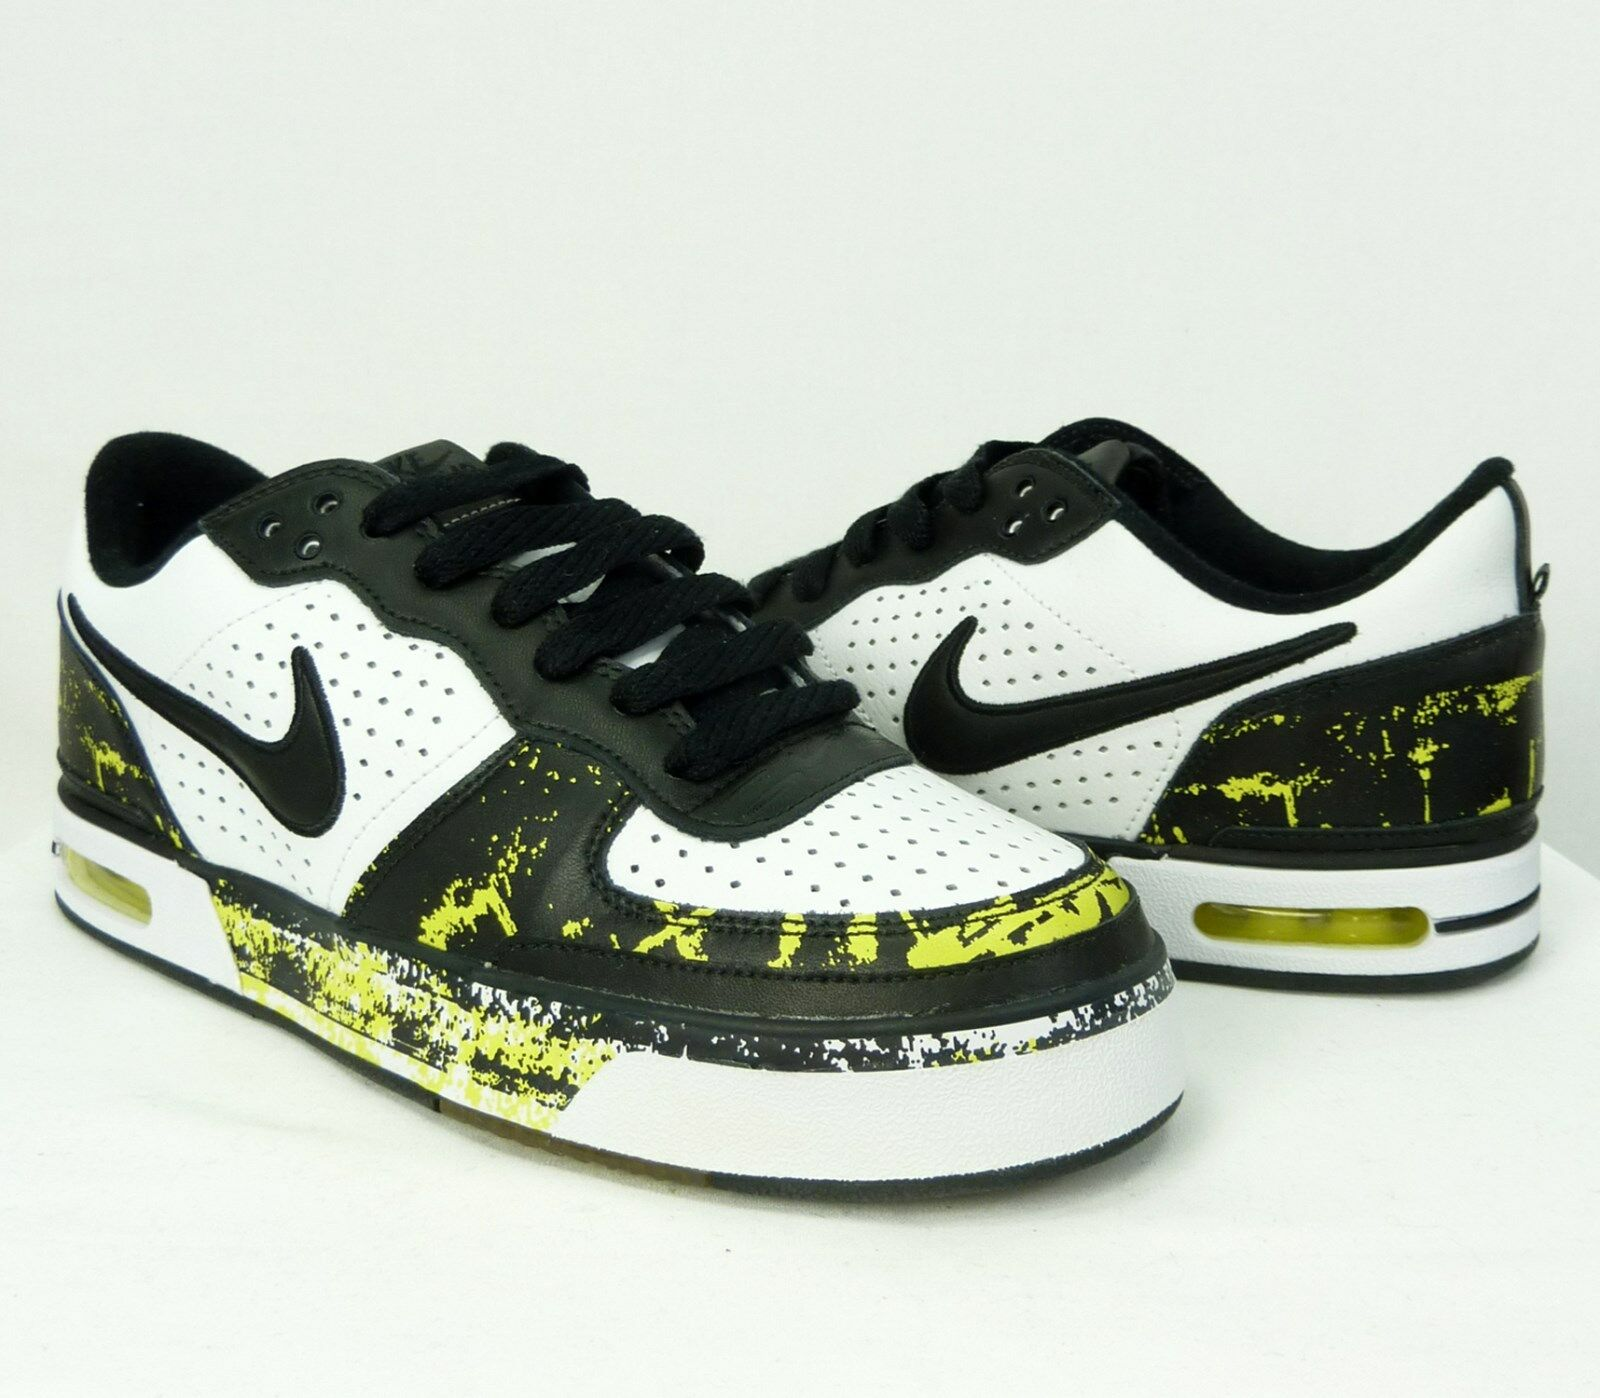 NEW NIKE AIR CAPTIVATE SPLATTER STYLE SHOES SNEAKERS DEADSTOCK SIZE 8.5 US